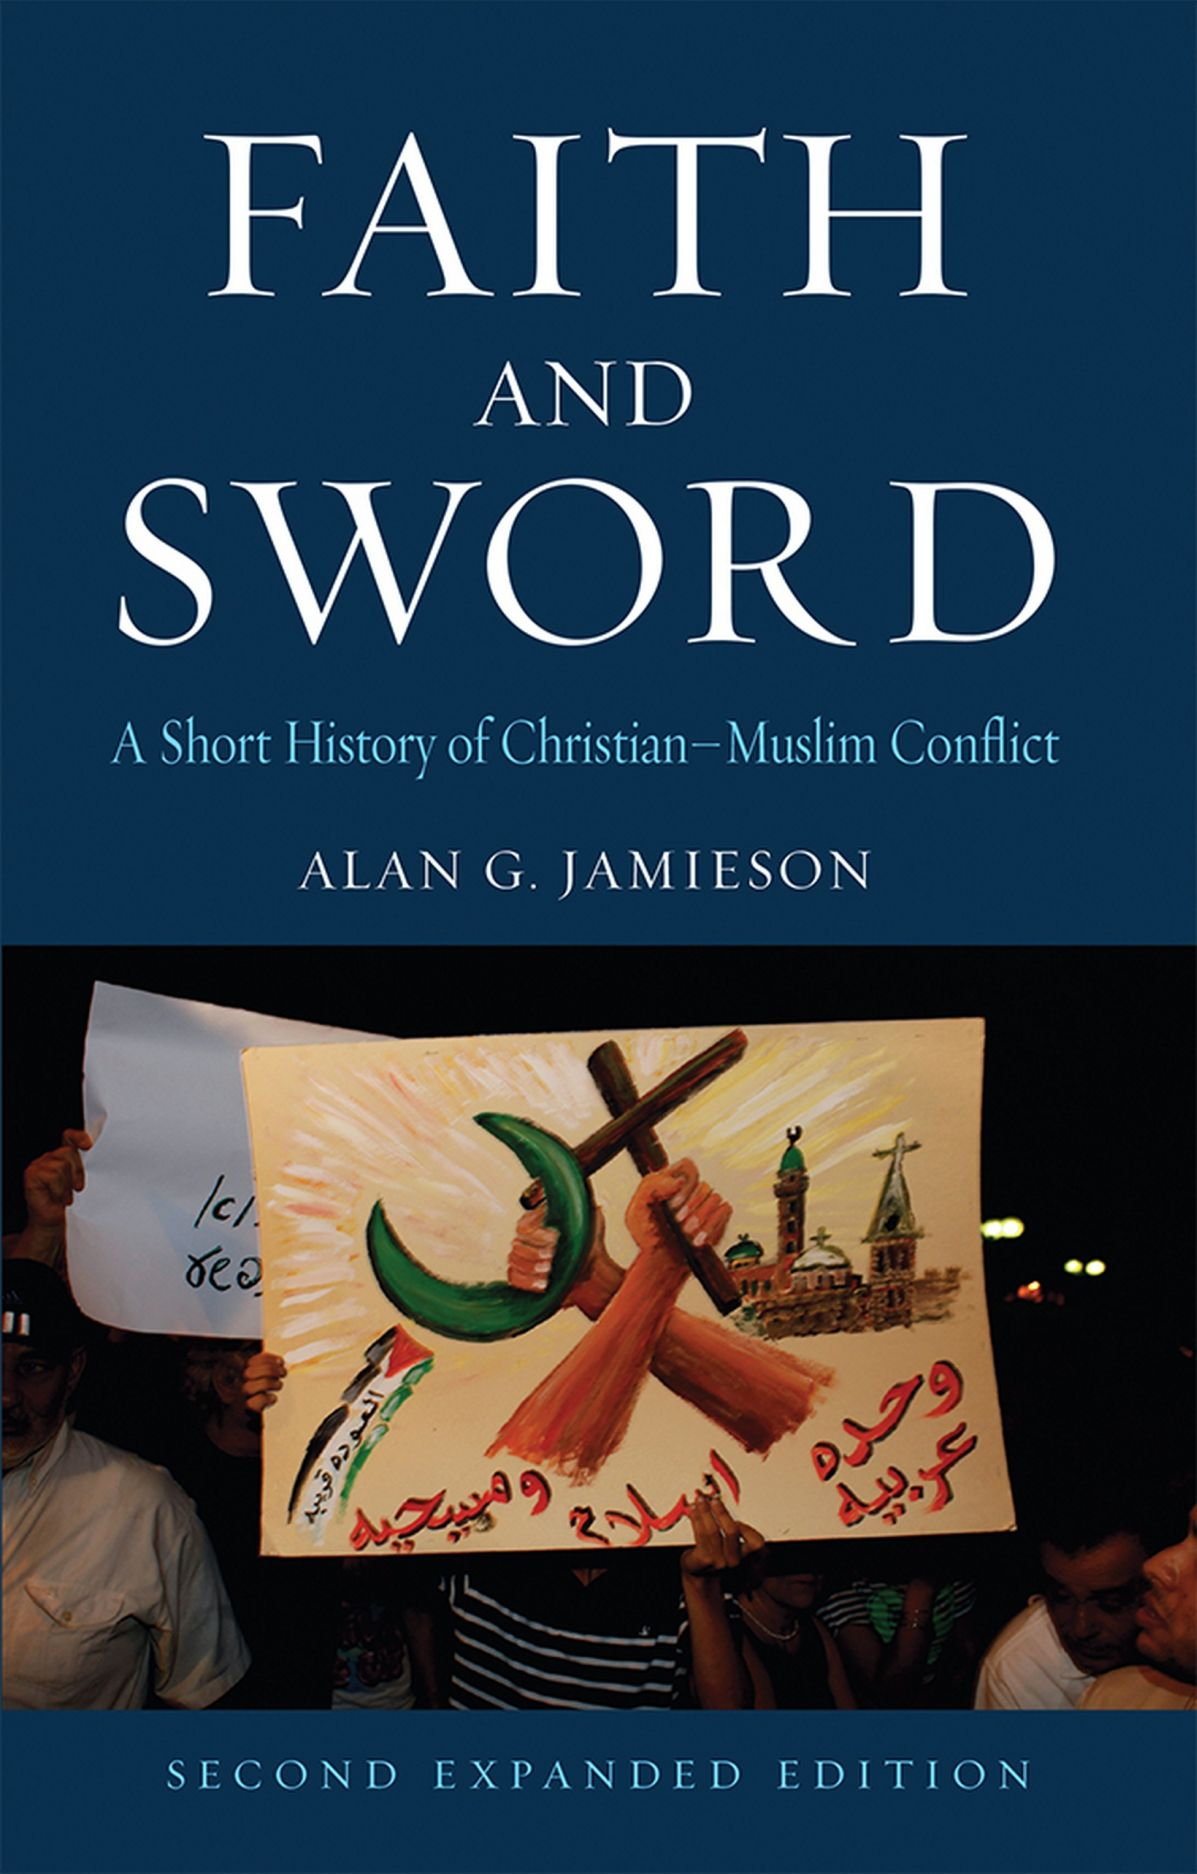 Faith and Sword: A Short History of Christian–Muslim Conflict, Second Expanded Edition